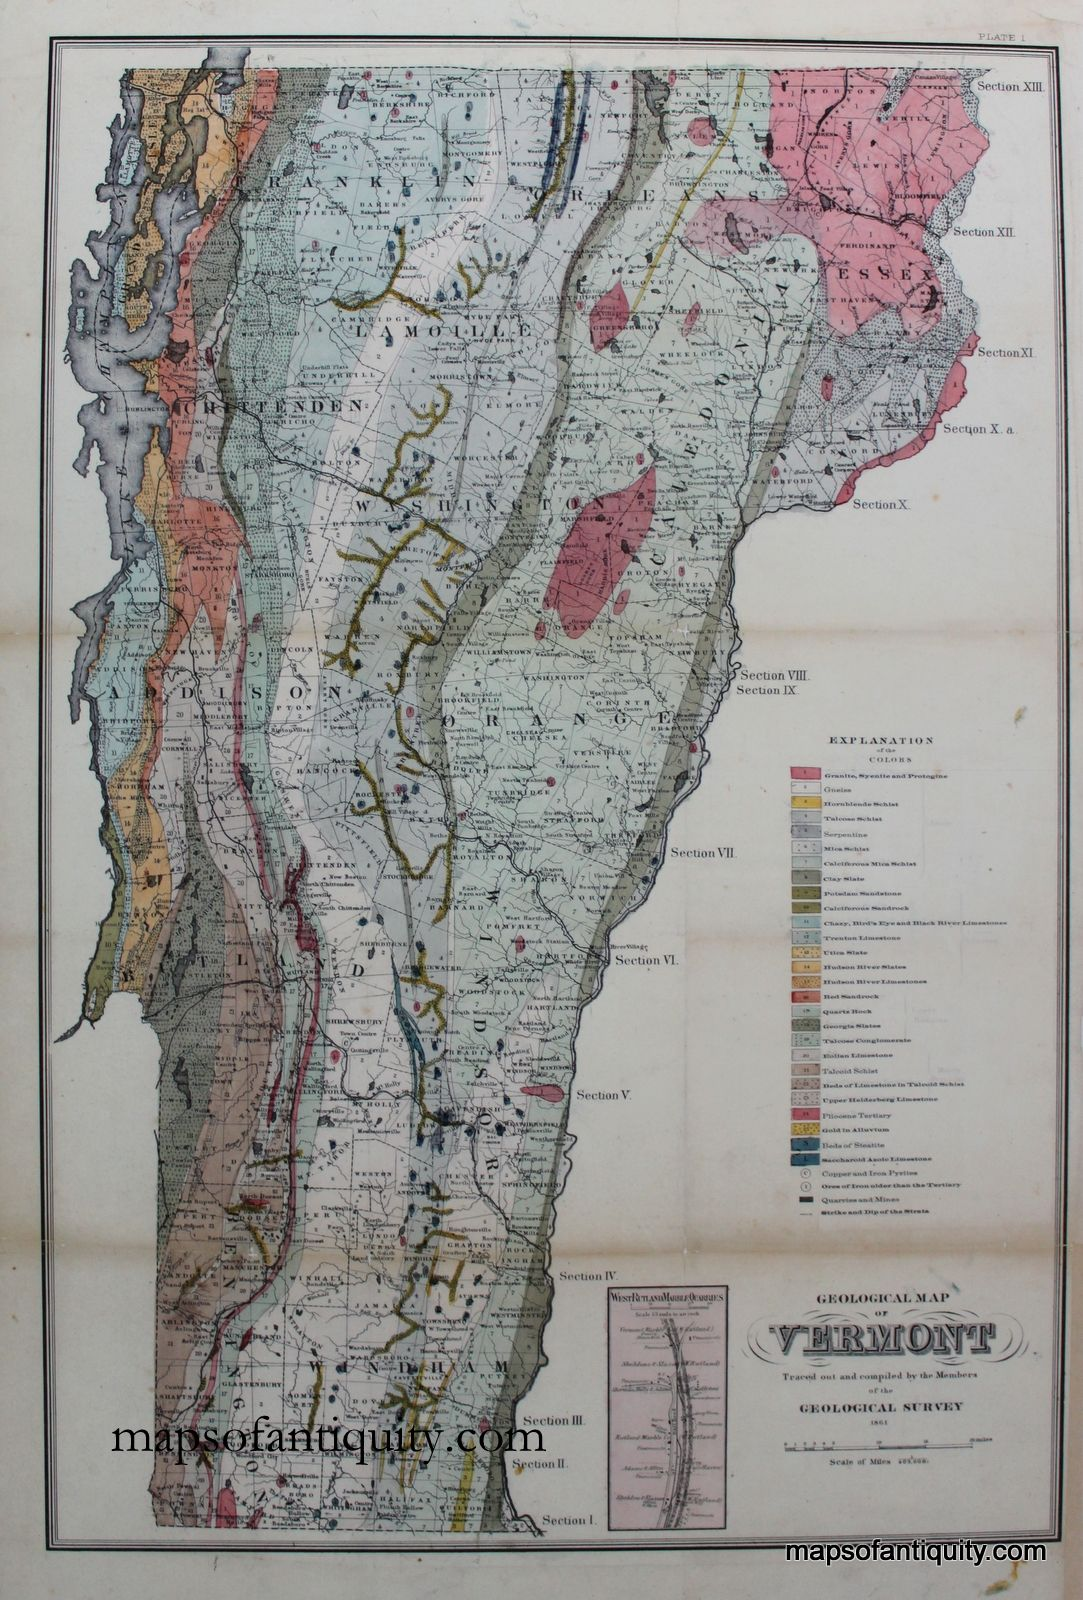 geologic map of vermont H Geological Map Of Vermont 25 X 17 110 Antique Maps Map geologic map of vermont